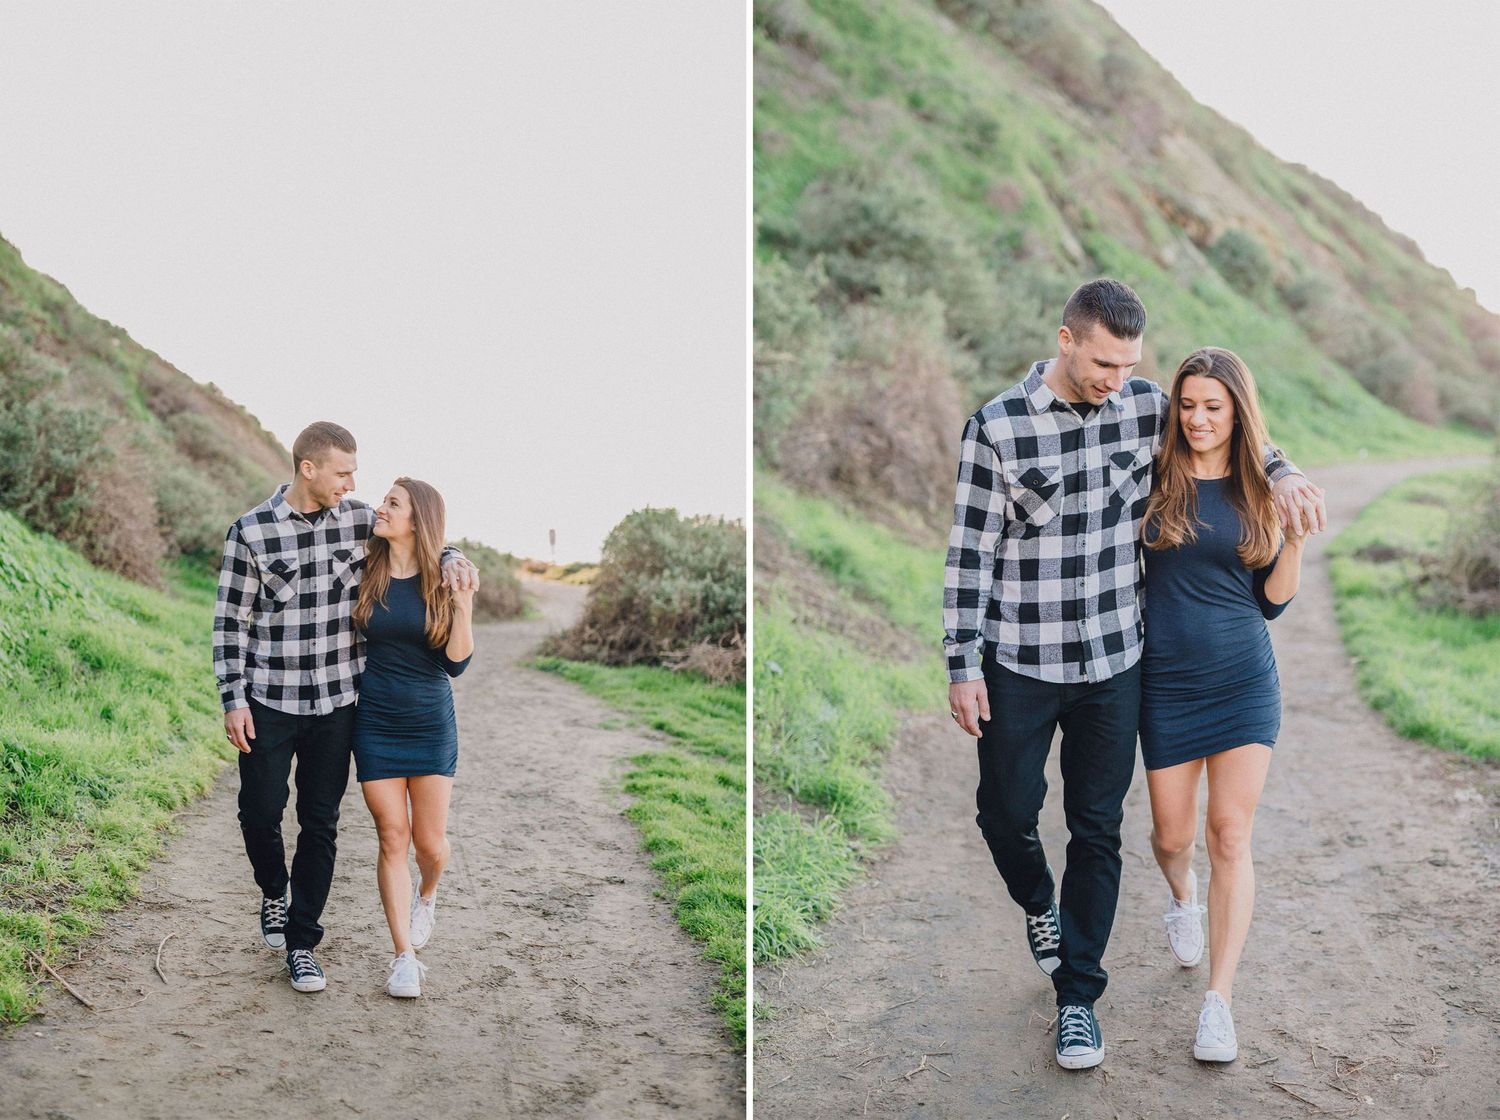 palos verdes beach trail engagement photo